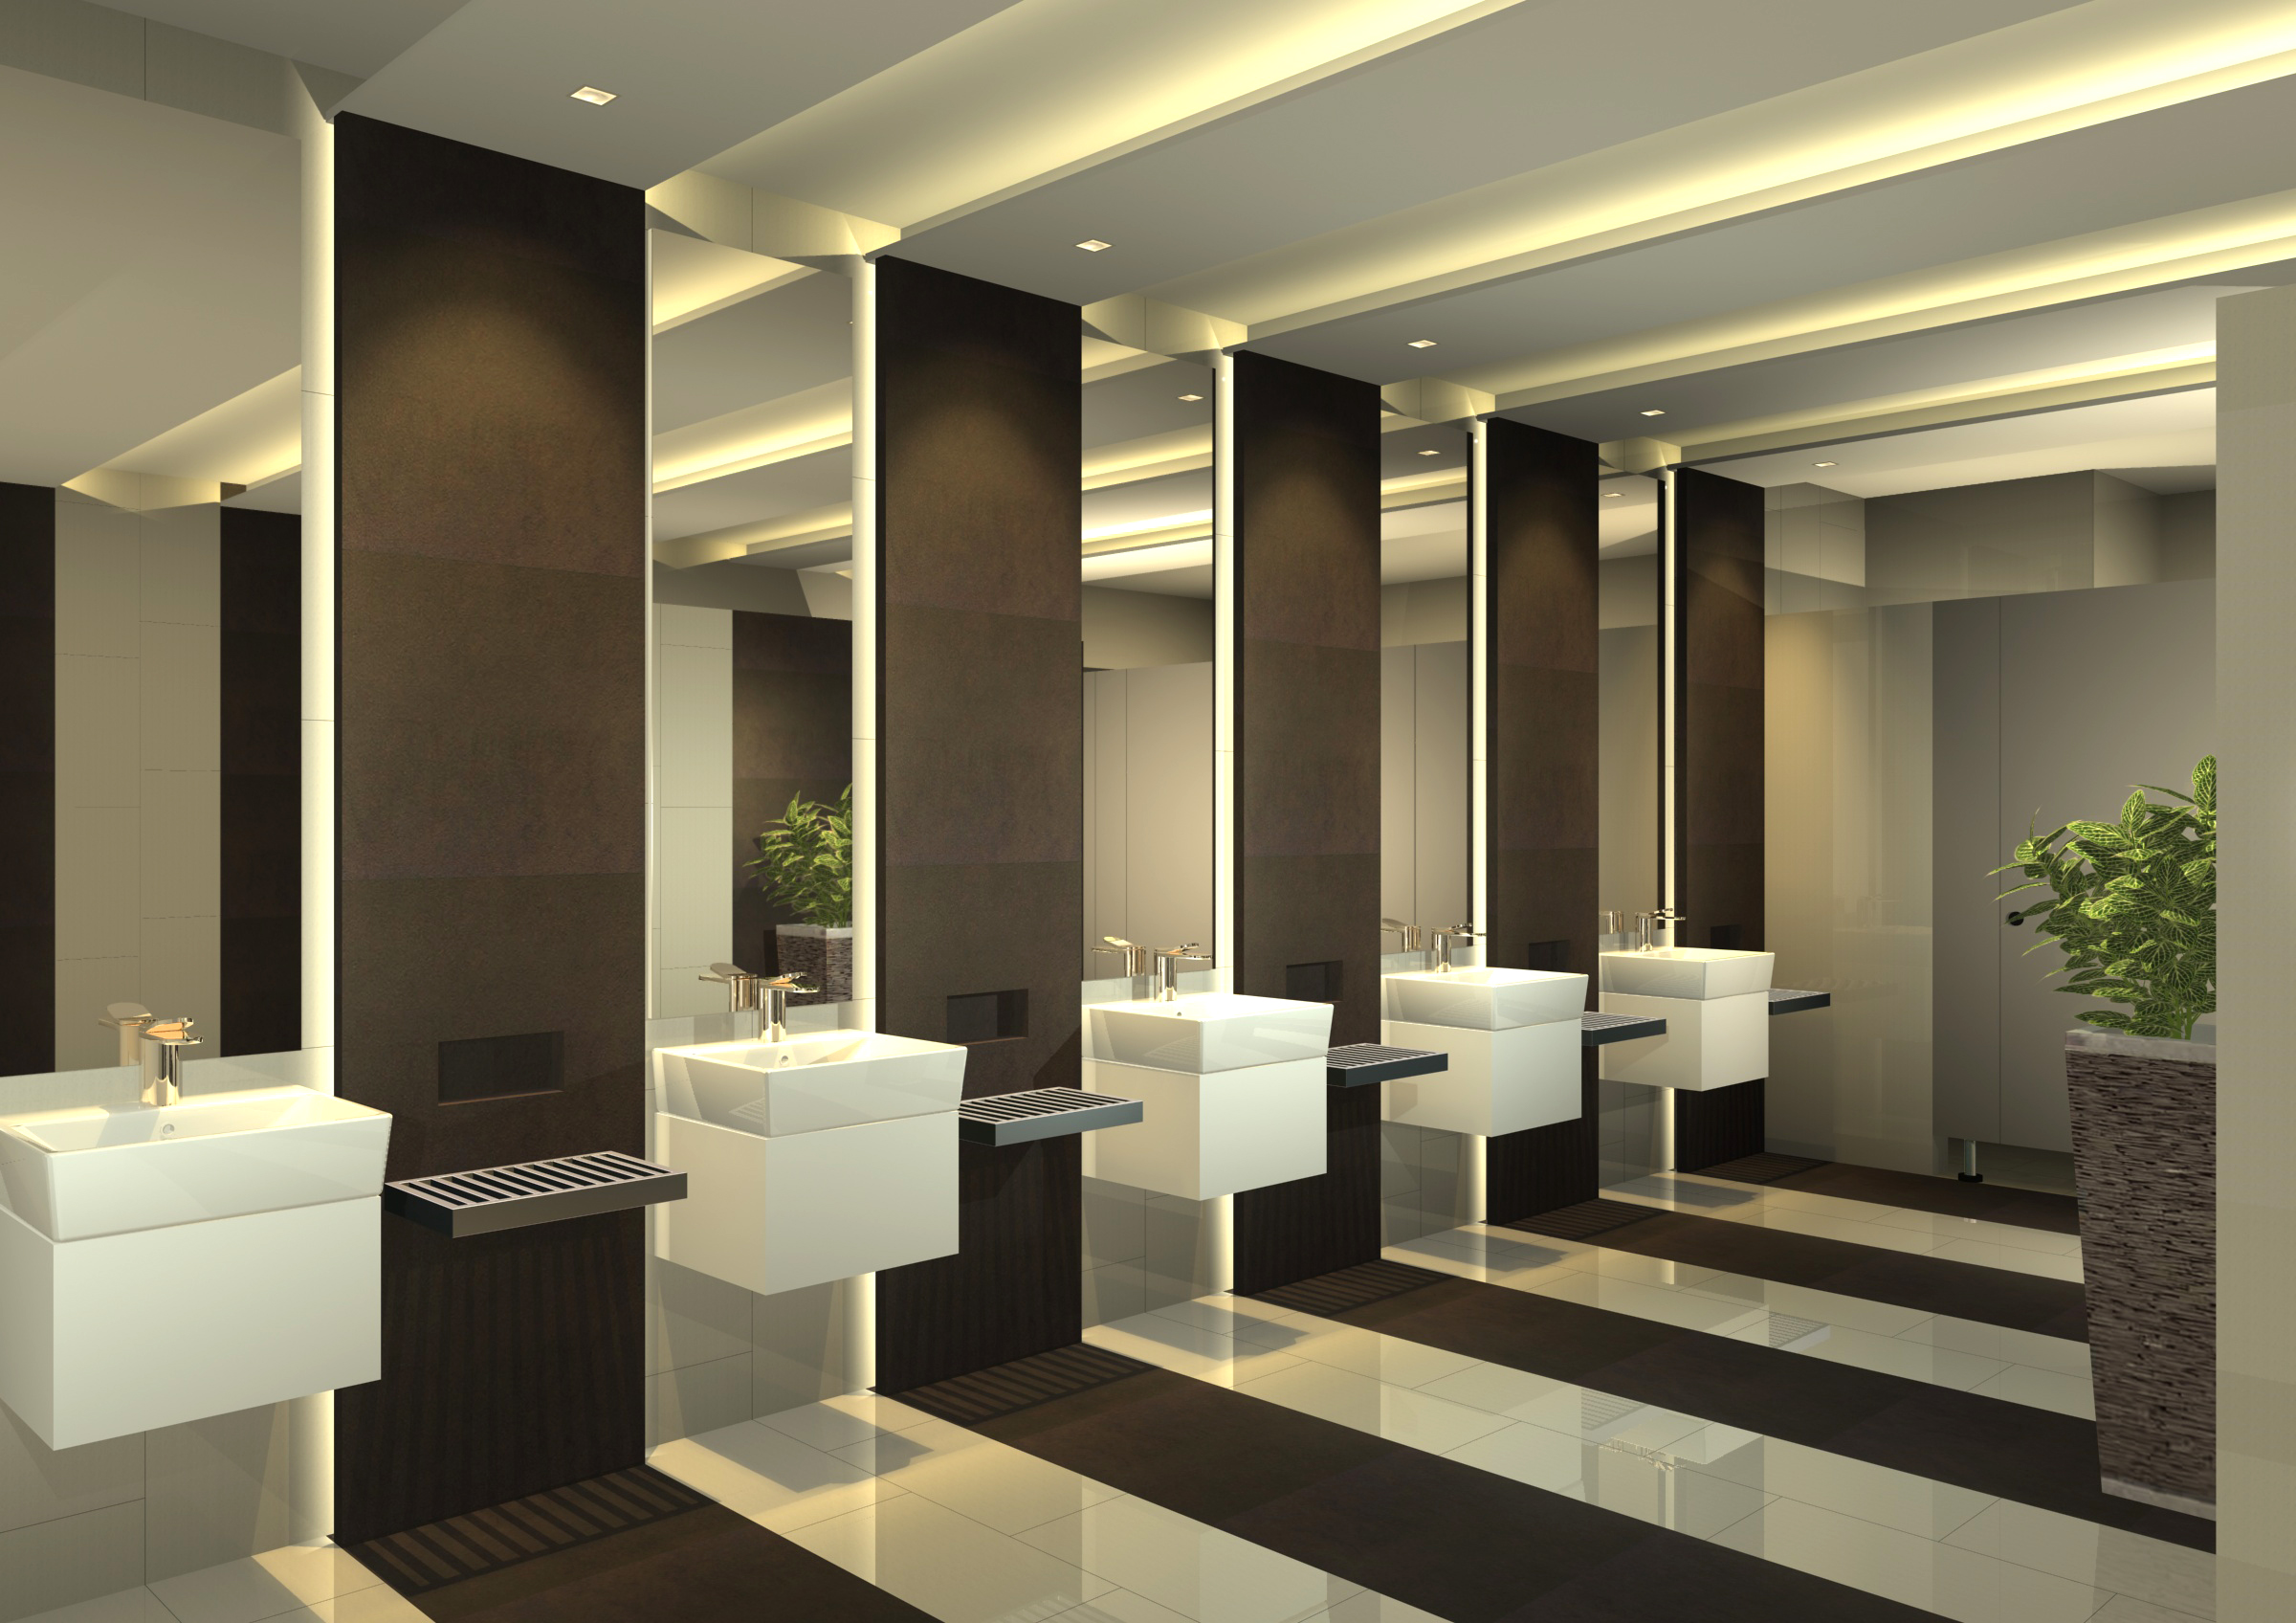 Interior Office Restroom Ecora Architects